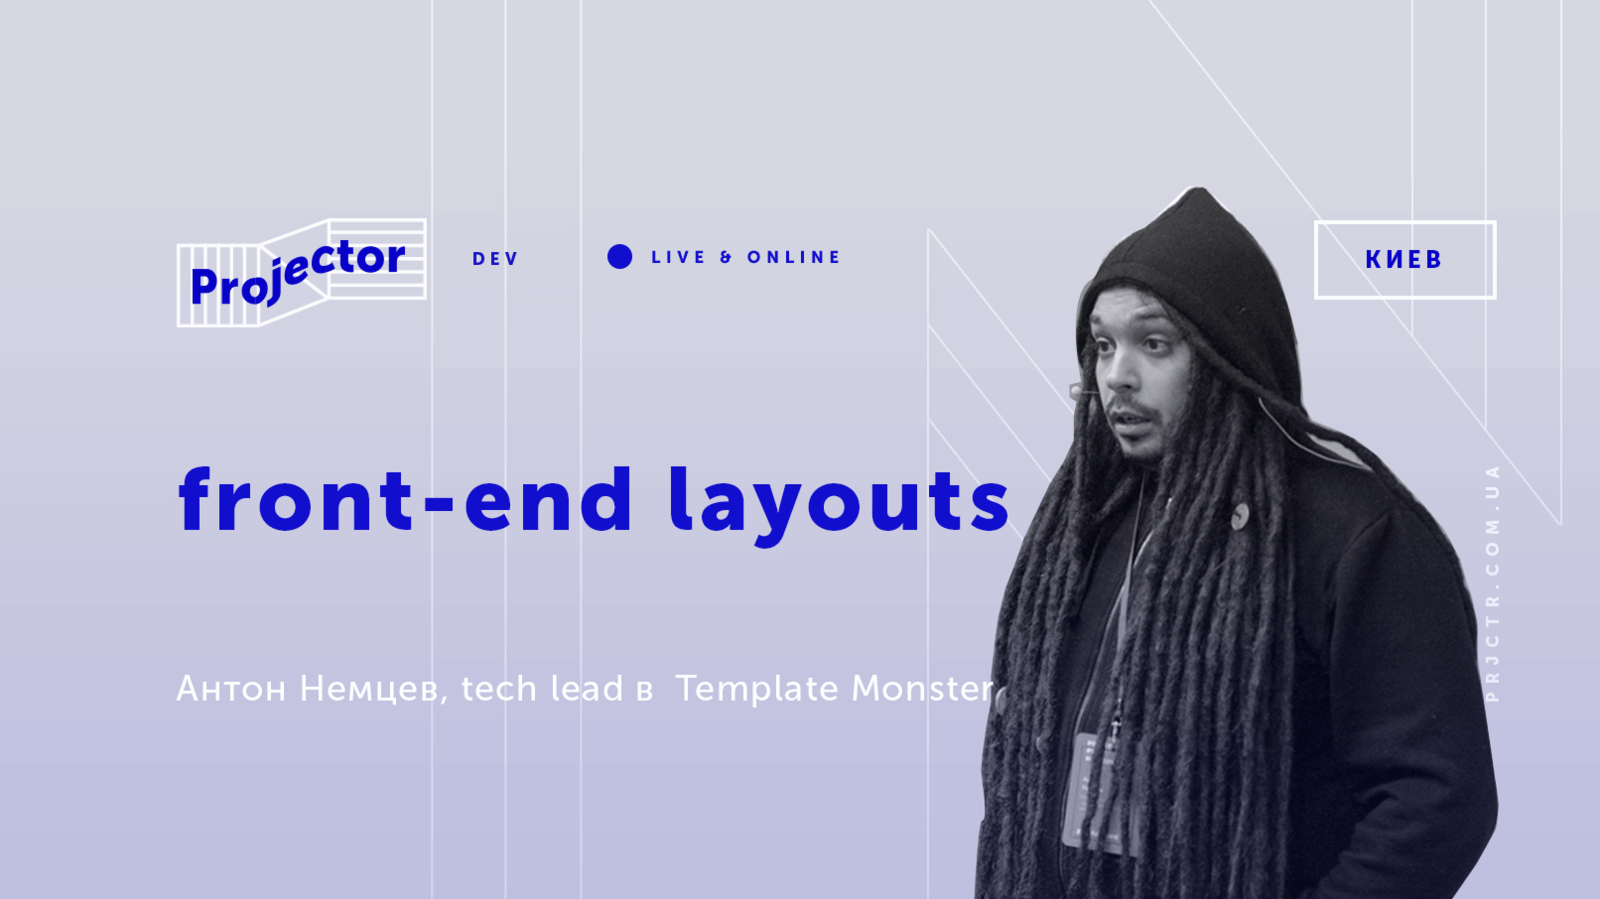 «Front-end layouts»